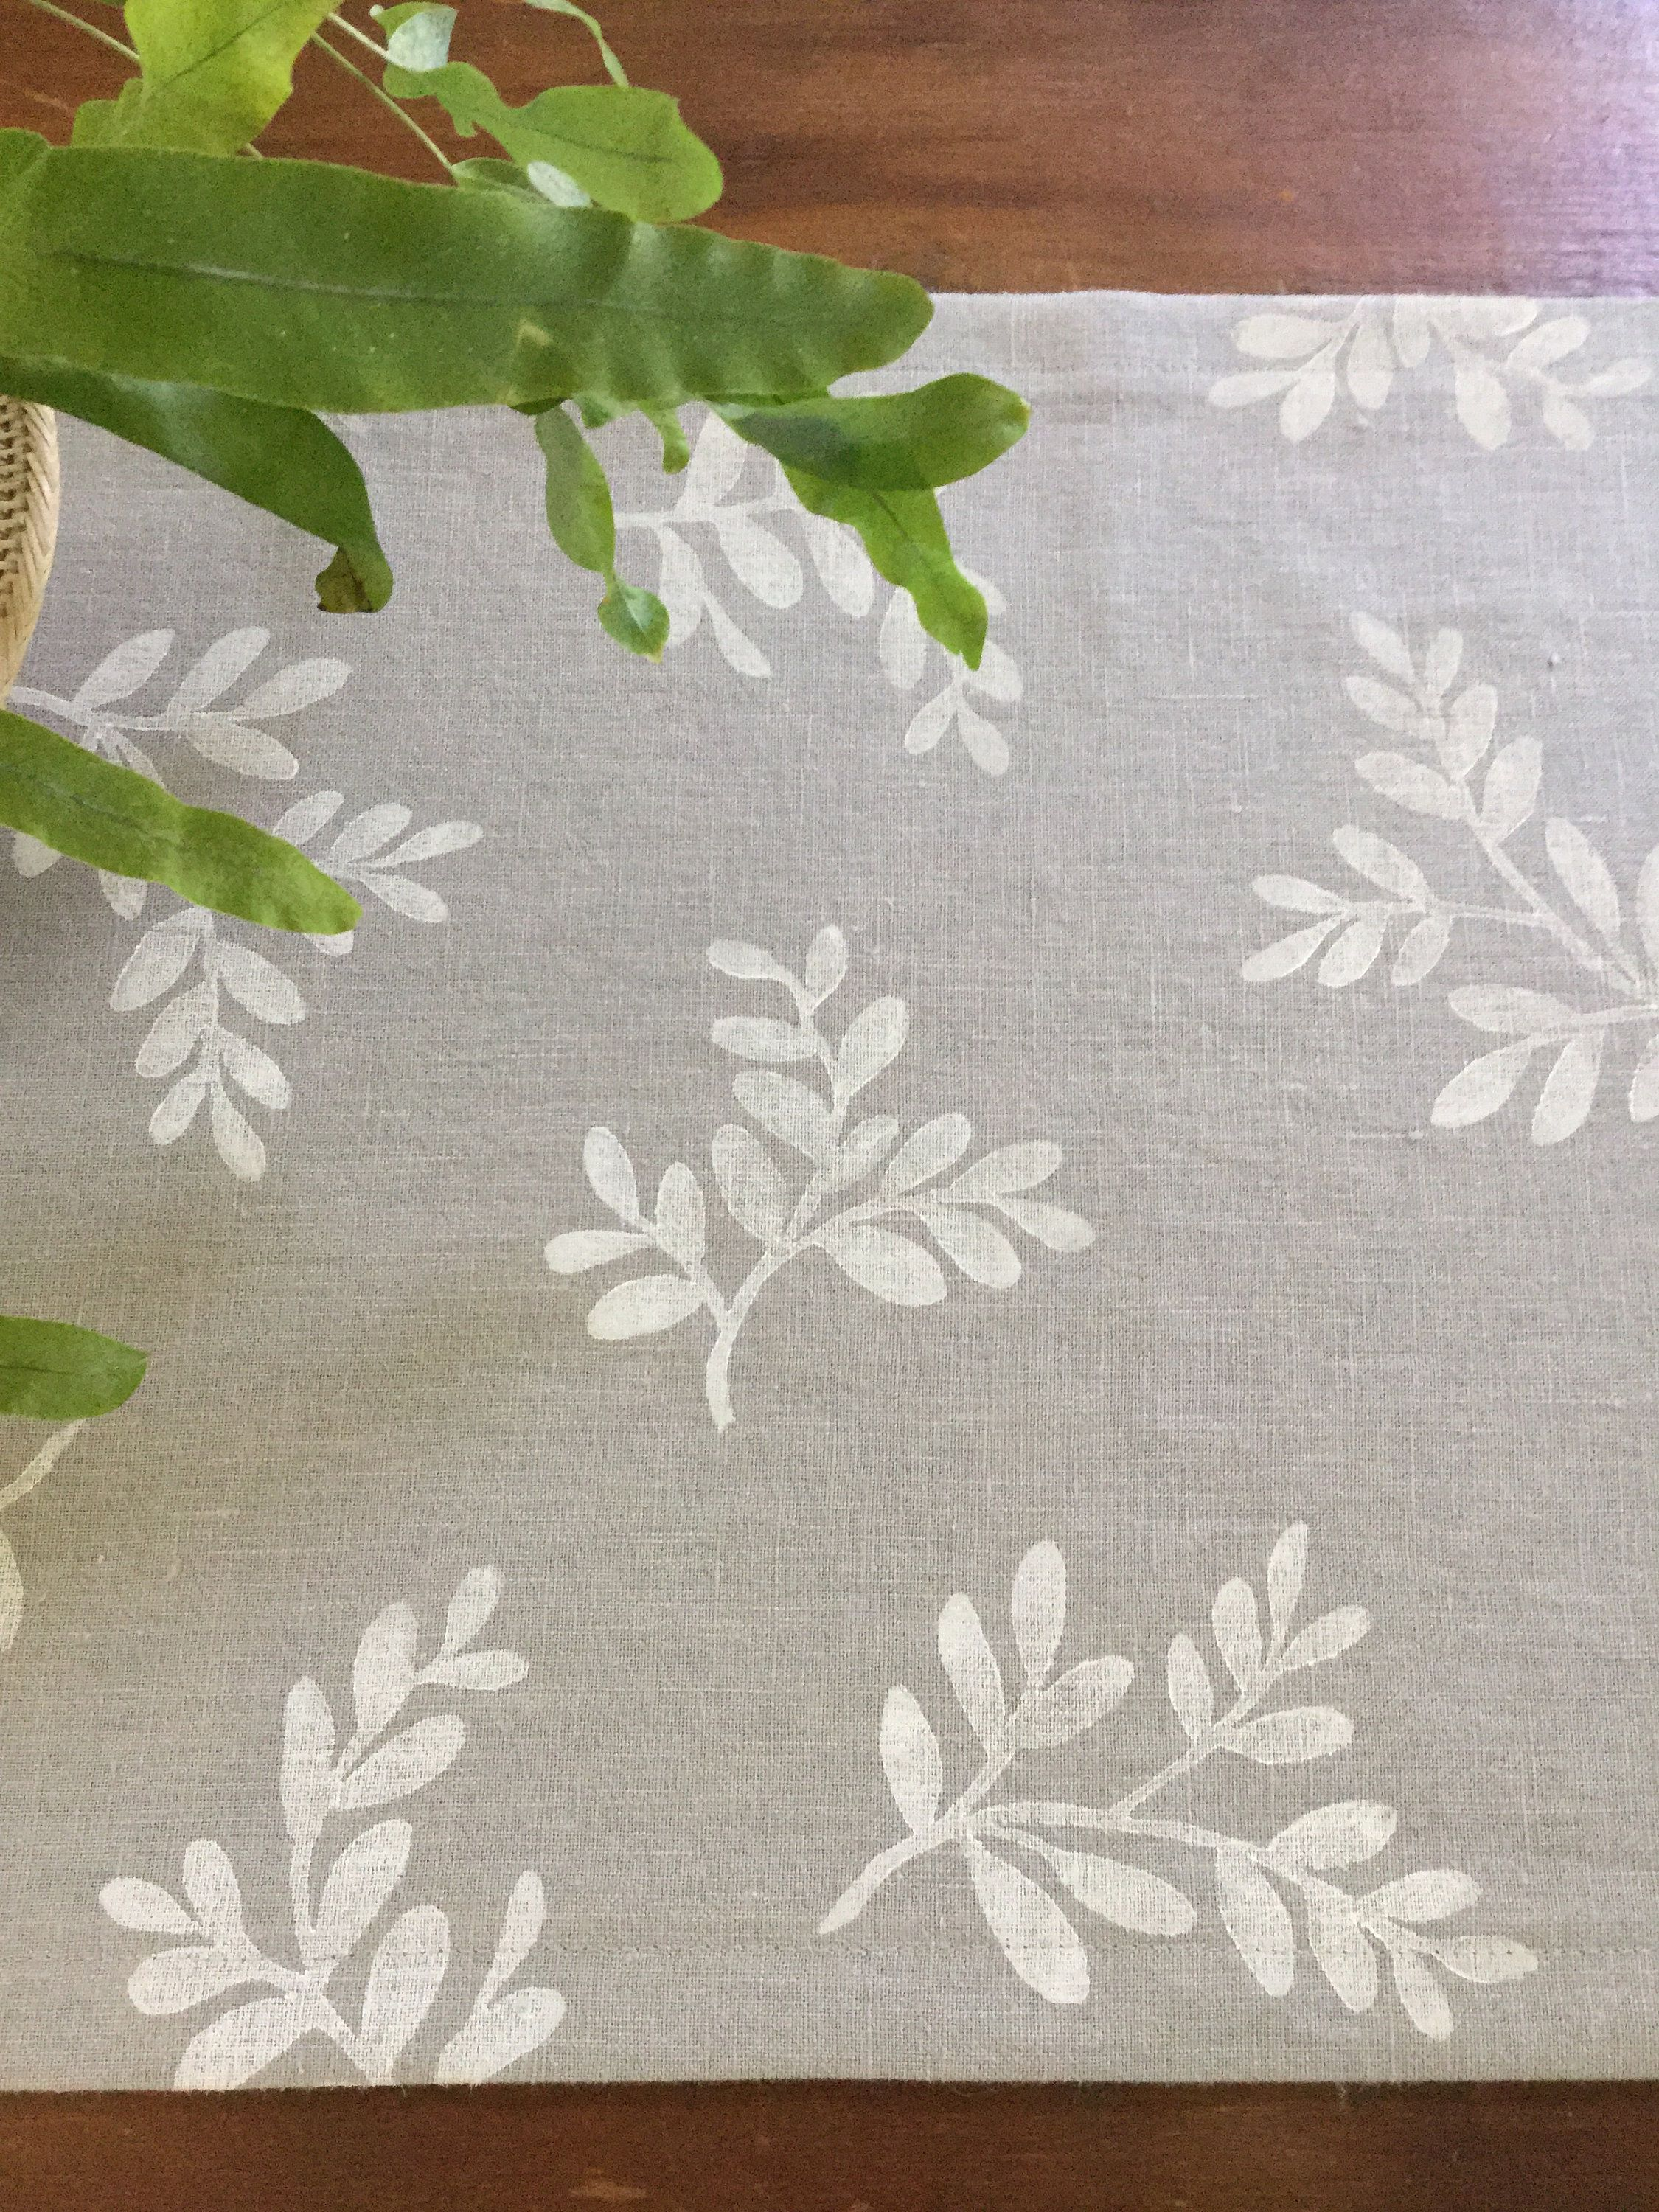 Printed Gray Linen Table Runner Cloth With White Block Print Design Handprinted For Dining Room Or Dresser By Calendulahandmade On